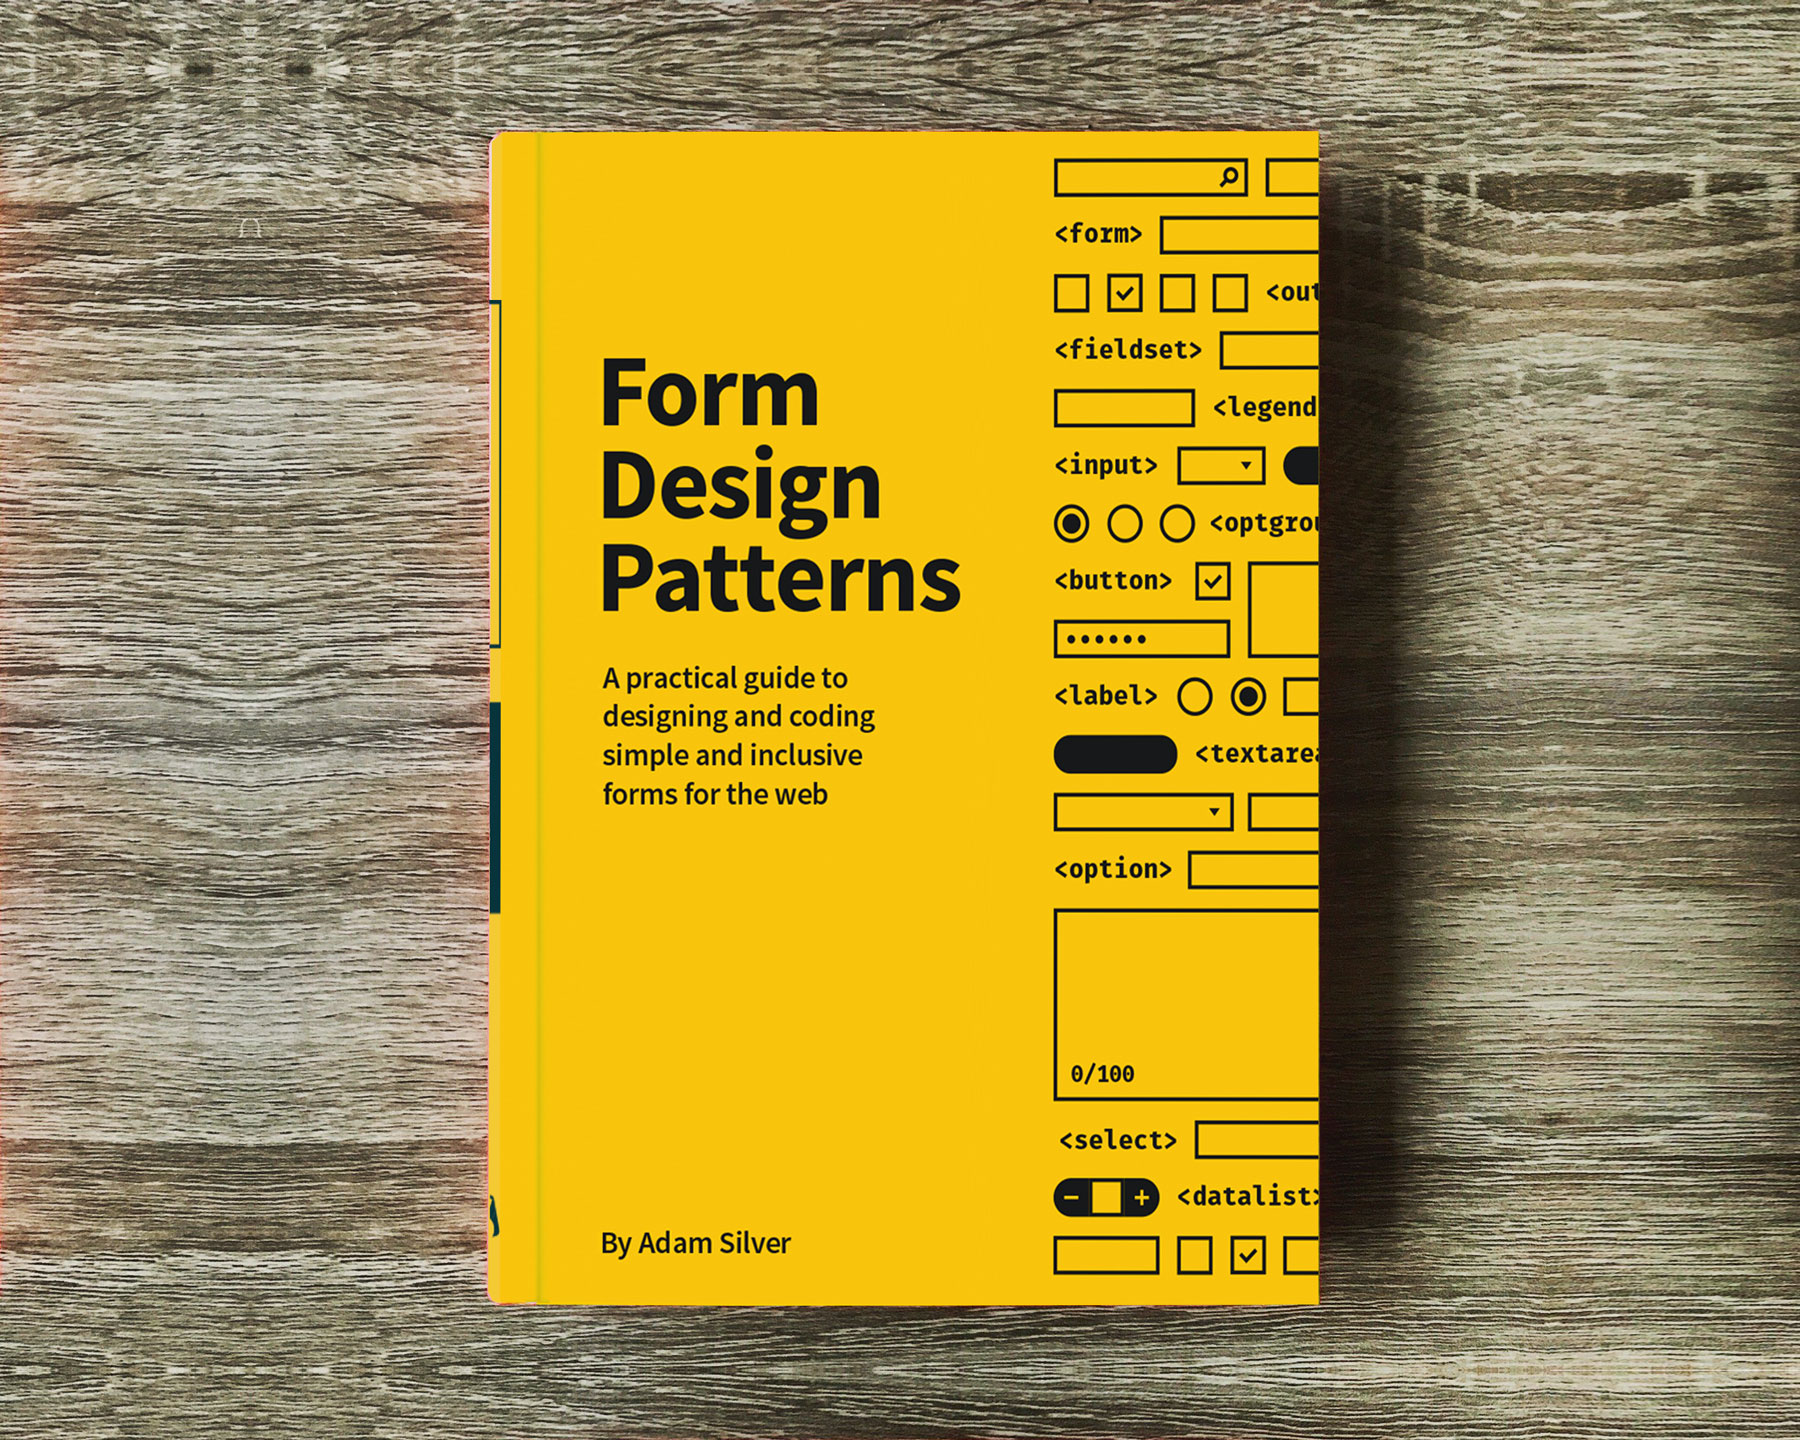 Meet Form Design Patterns Our New Book On Accessible Web Forms Now Shipping Smashing Magazine